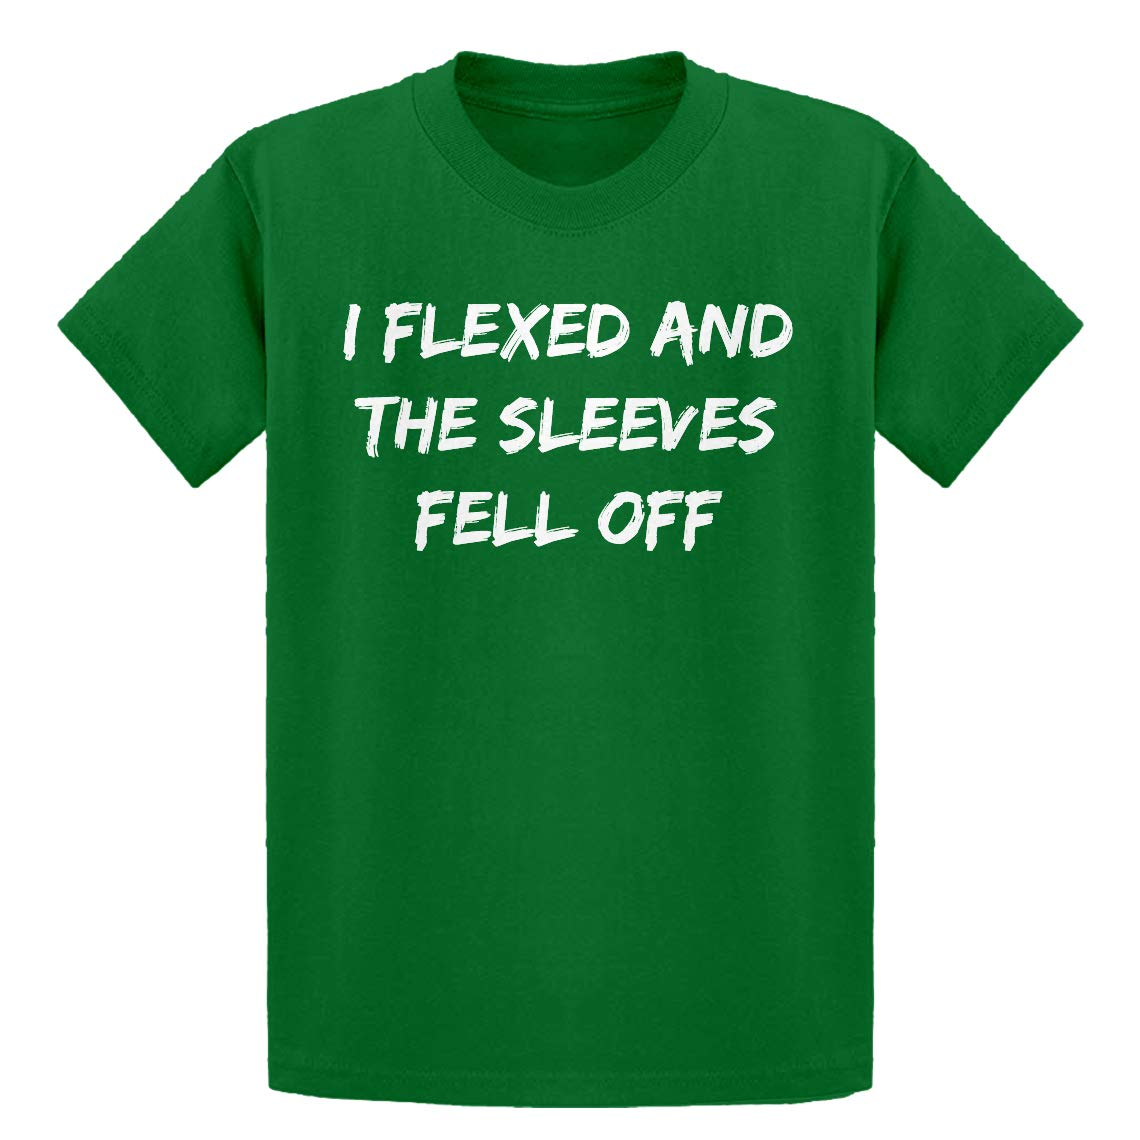 Indica Plateau Youth I Flexed and The Sleeves Fell Off Kids T-Shirt